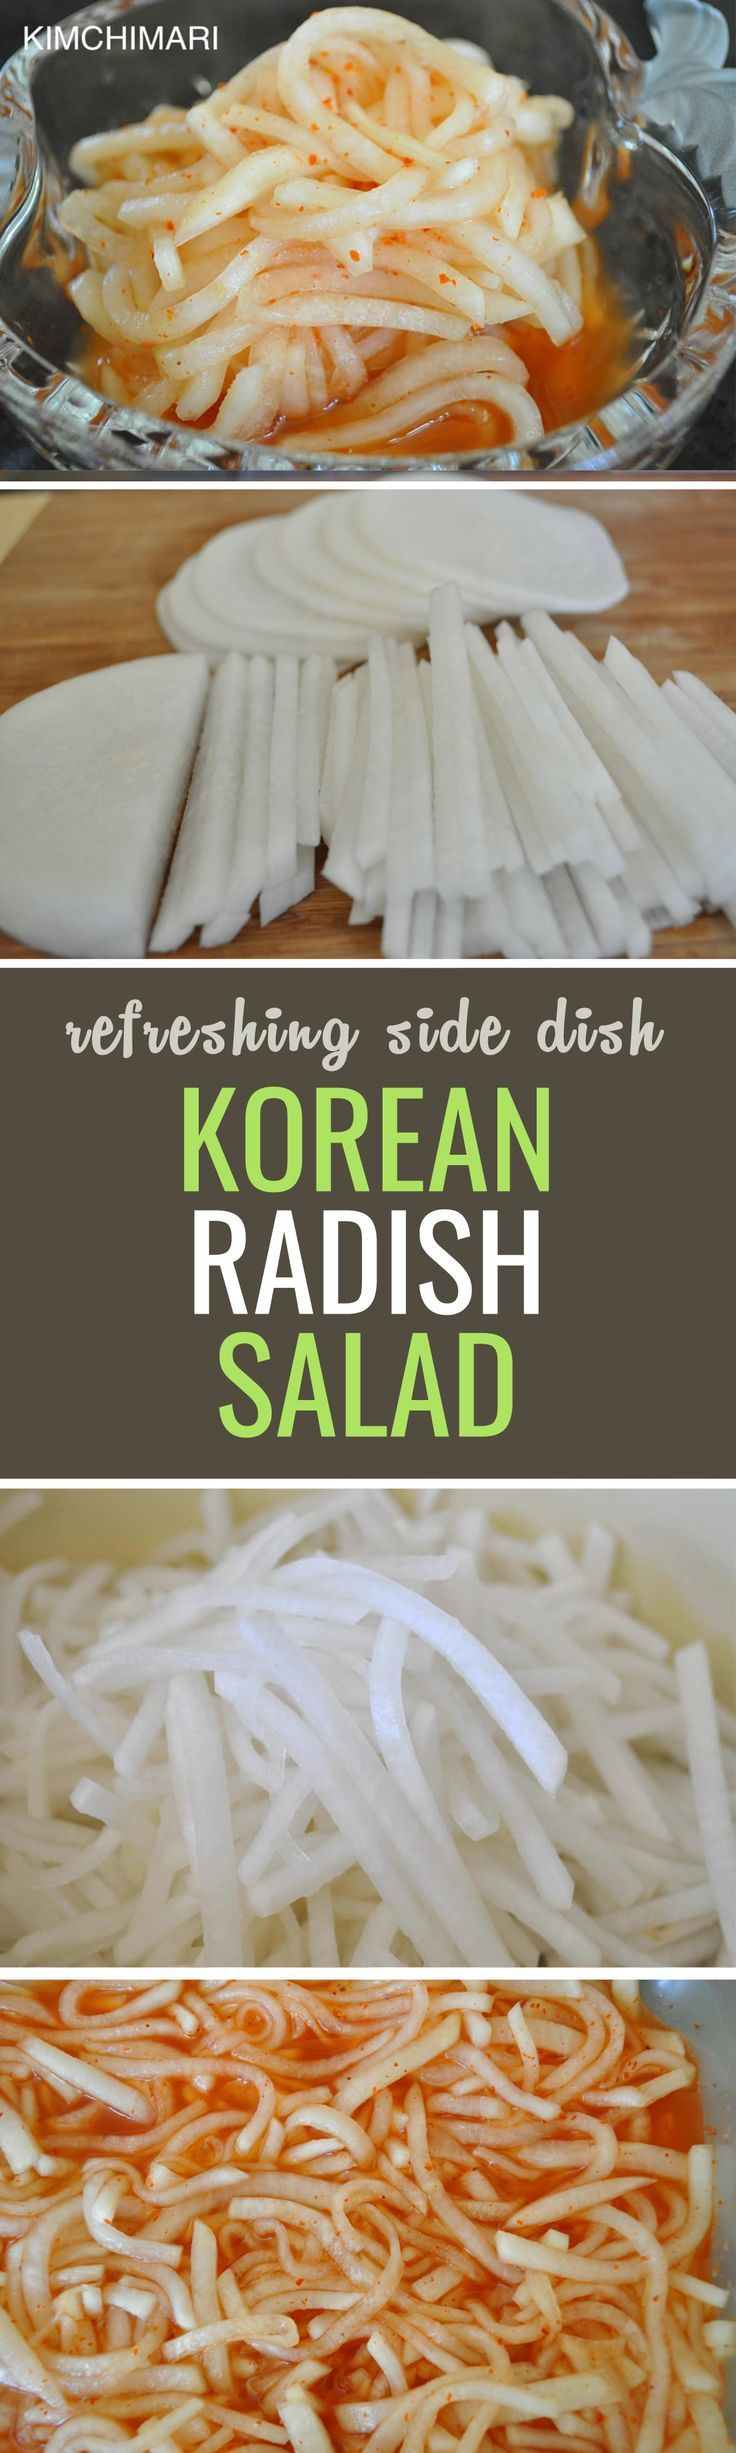 Moo means radish in Korean, and it has versatile use over almost any dish from salads to soups and even tea. This salad is similar to kimchi but a lot lighter and easier to make!